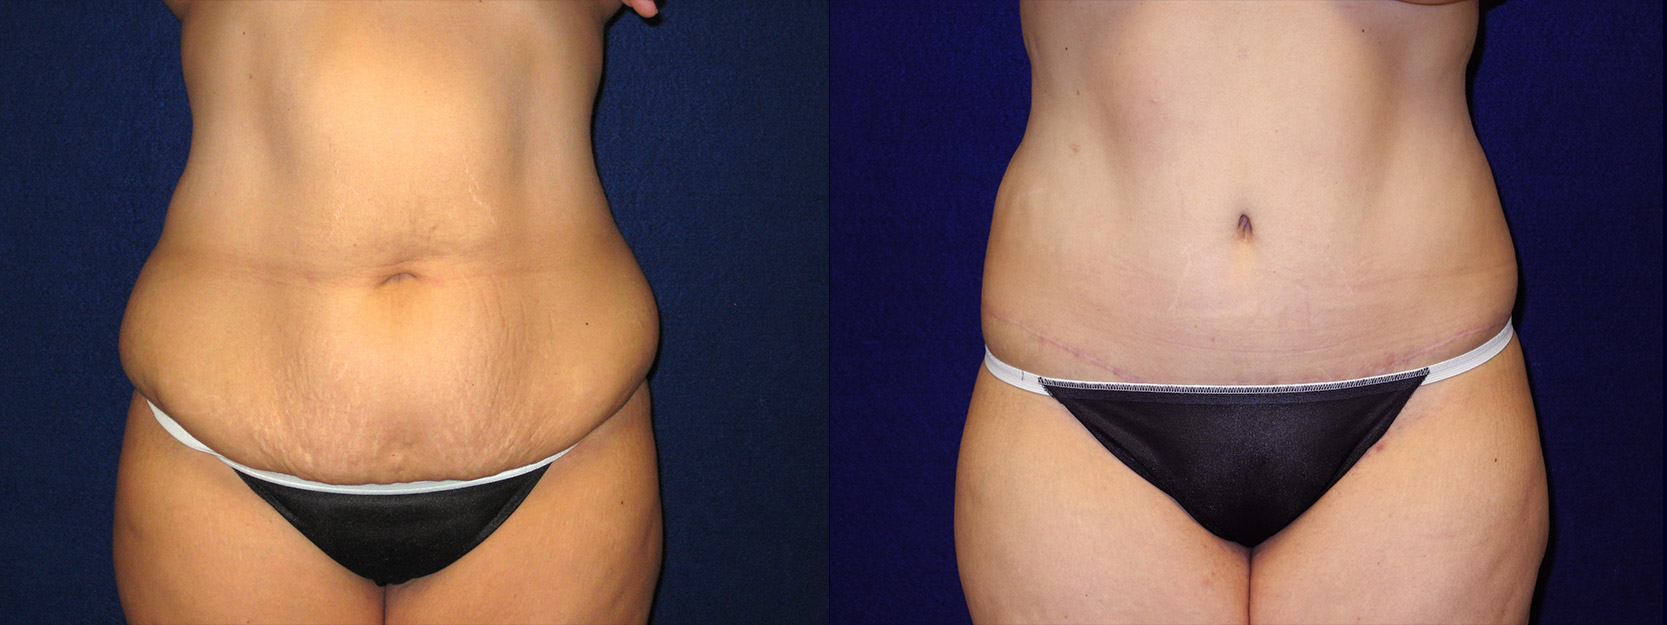 Frontal View - Abdominoplasty After Massive Weight Loss